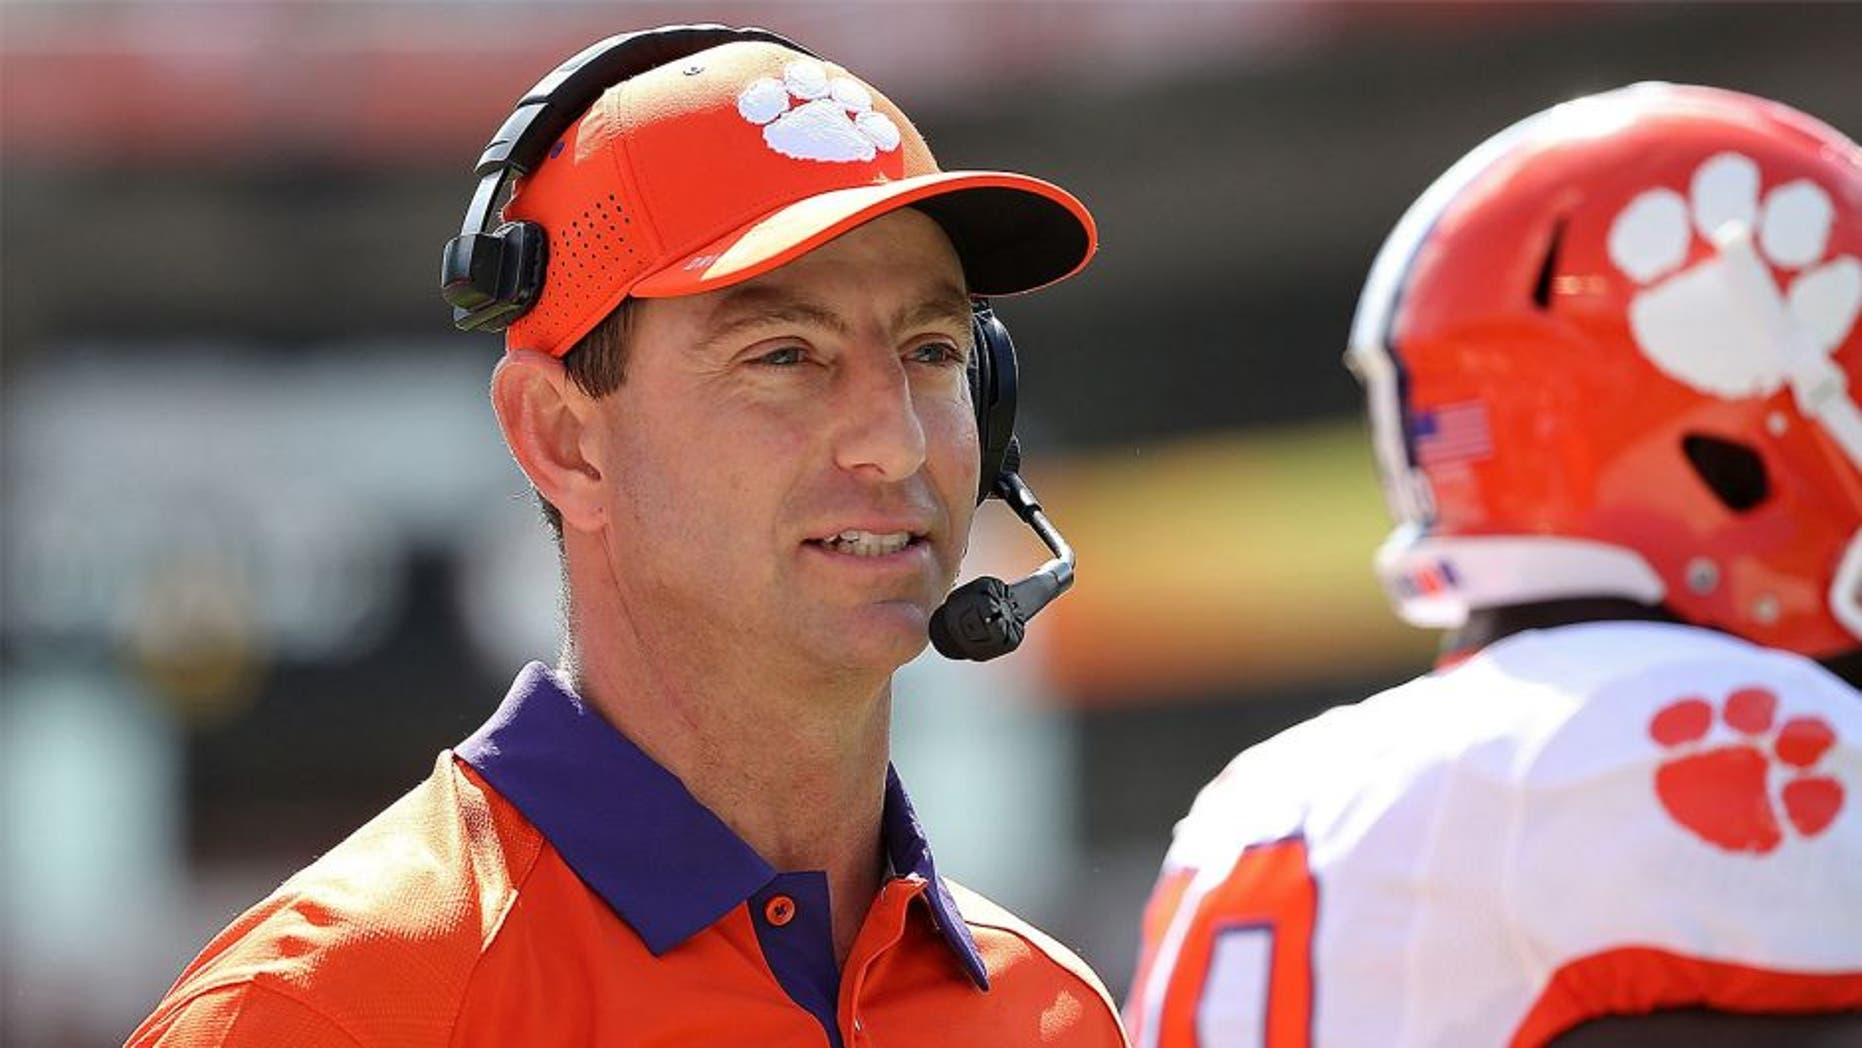 MIAMI GARDENS, FL - OCTOBER 24: Head coach Dabo Swinney of the Clemson Tigers reacts to a play during a game against the Miami Hurricanes at Sun Life Stadium on October 24, 2015 in Miami Gardens, Florida. (Photo by Mike Ehrmann/Getty Images)